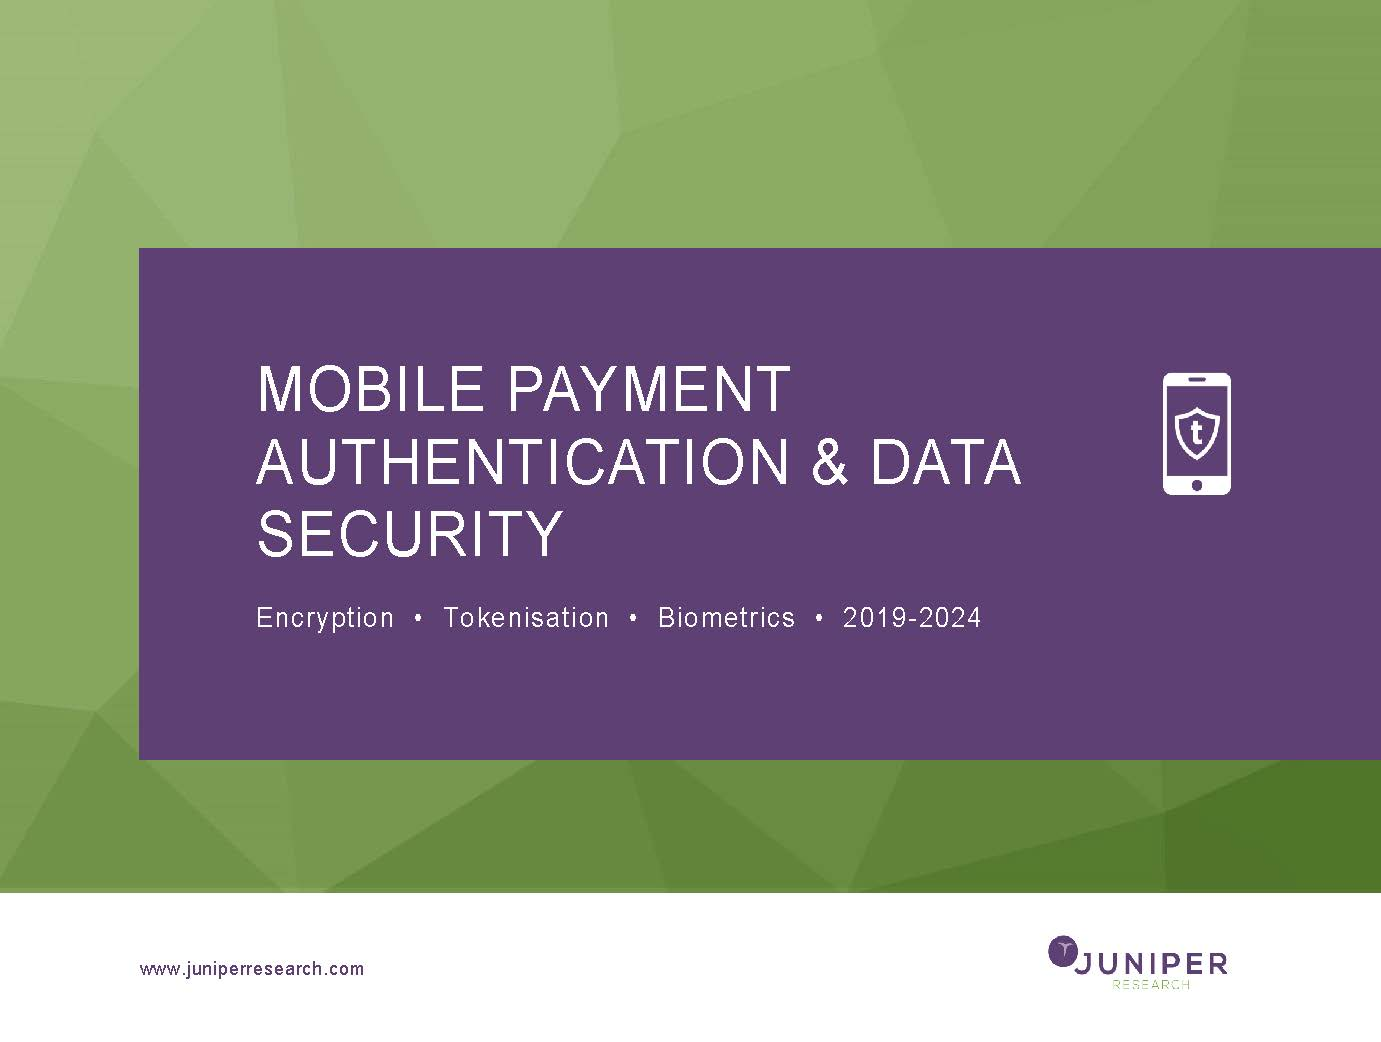 Mobile Payment Authentication & Data Security